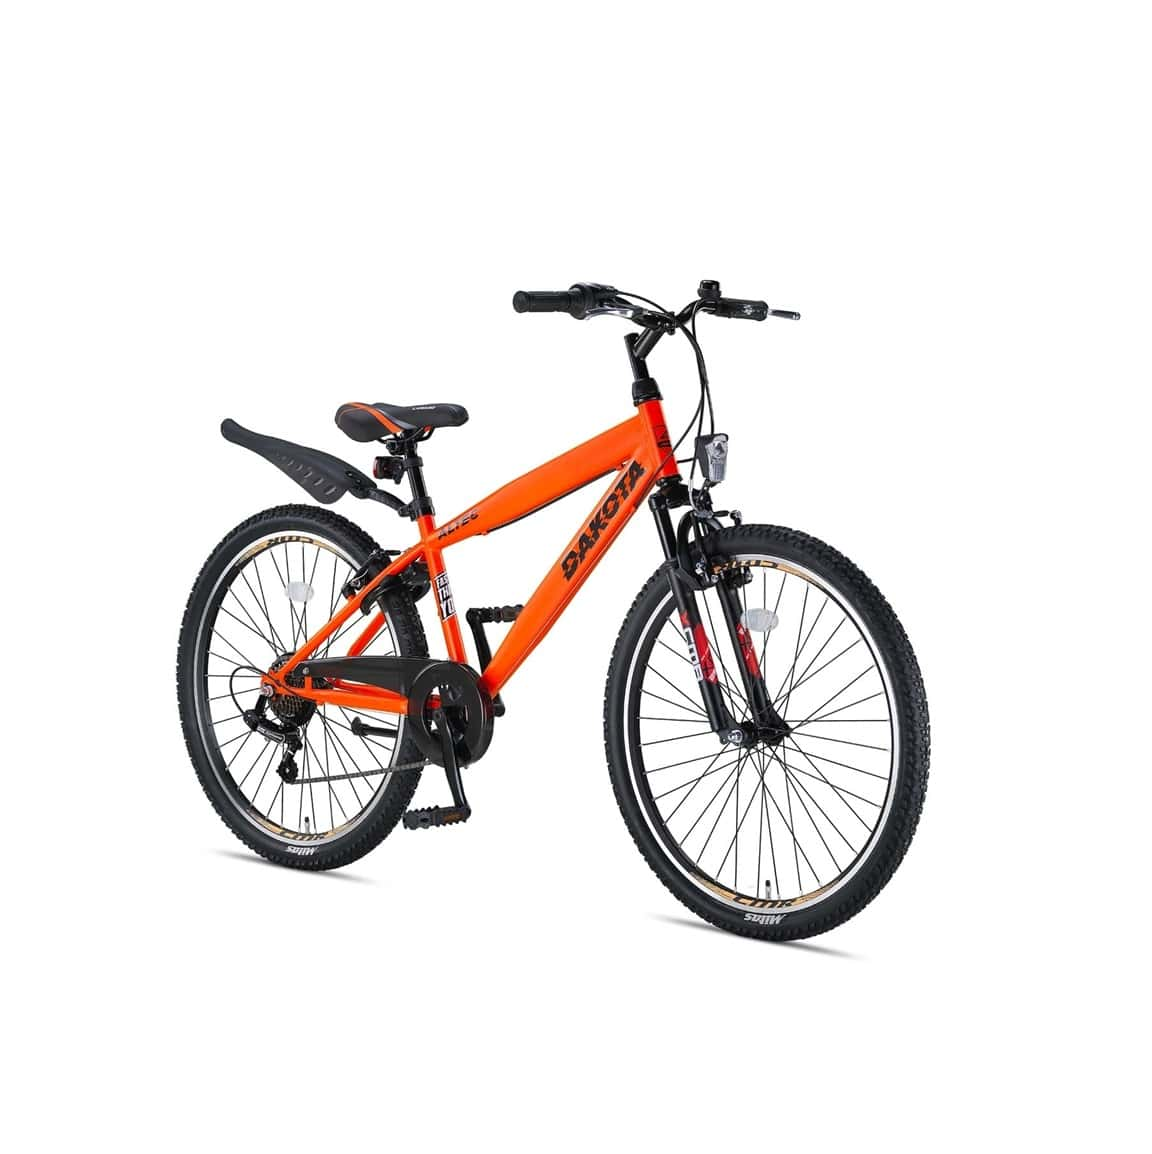 Altec-Dakota-26inch-Jongensfiets-7speed-2019-Neon-Orange-Nieuw-1-min